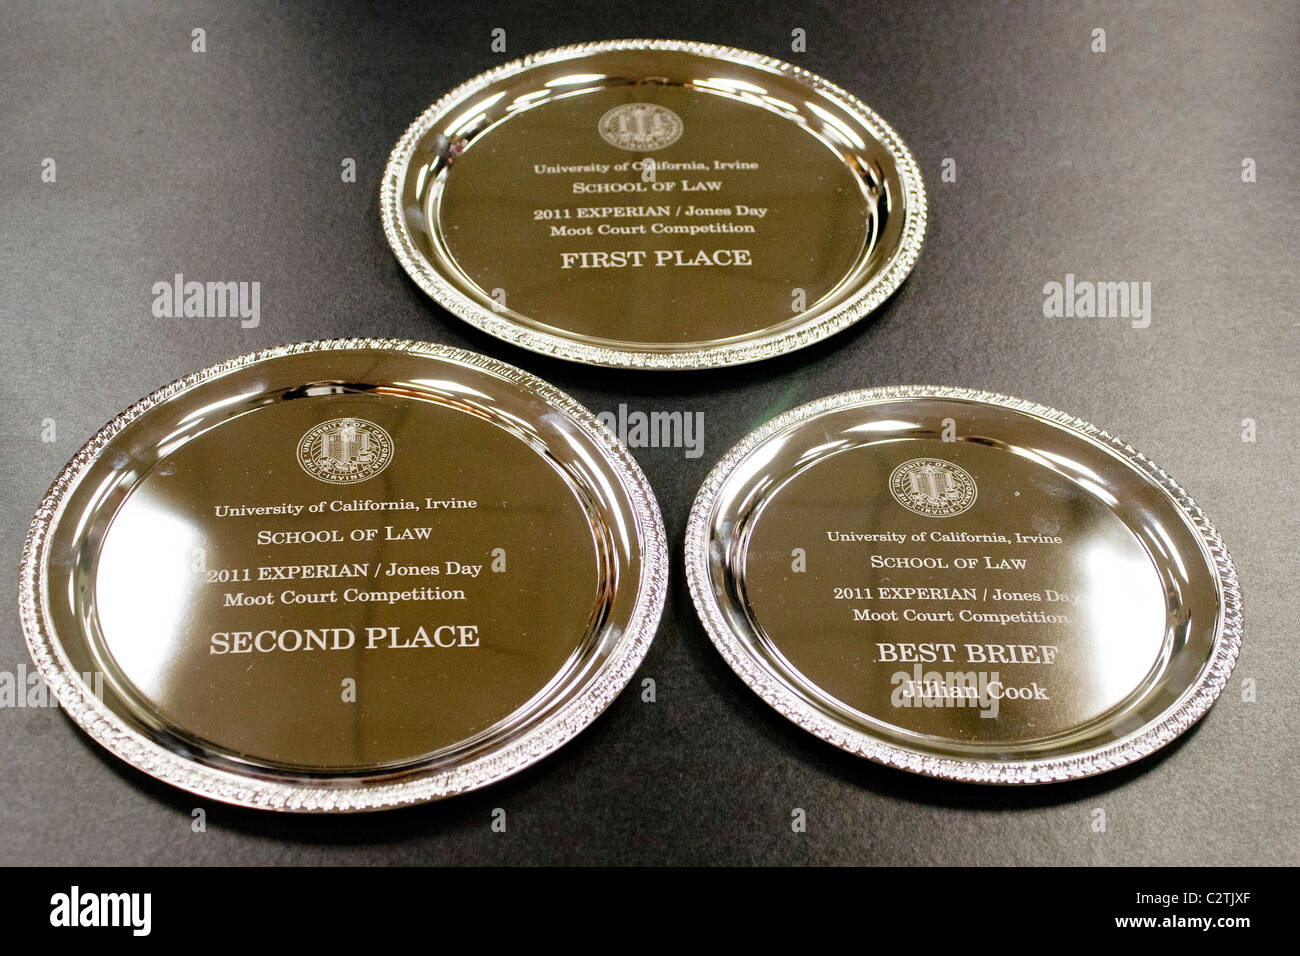 Silver plate prizes are on display at the moot court of the law school of the University of California. - Stock Image